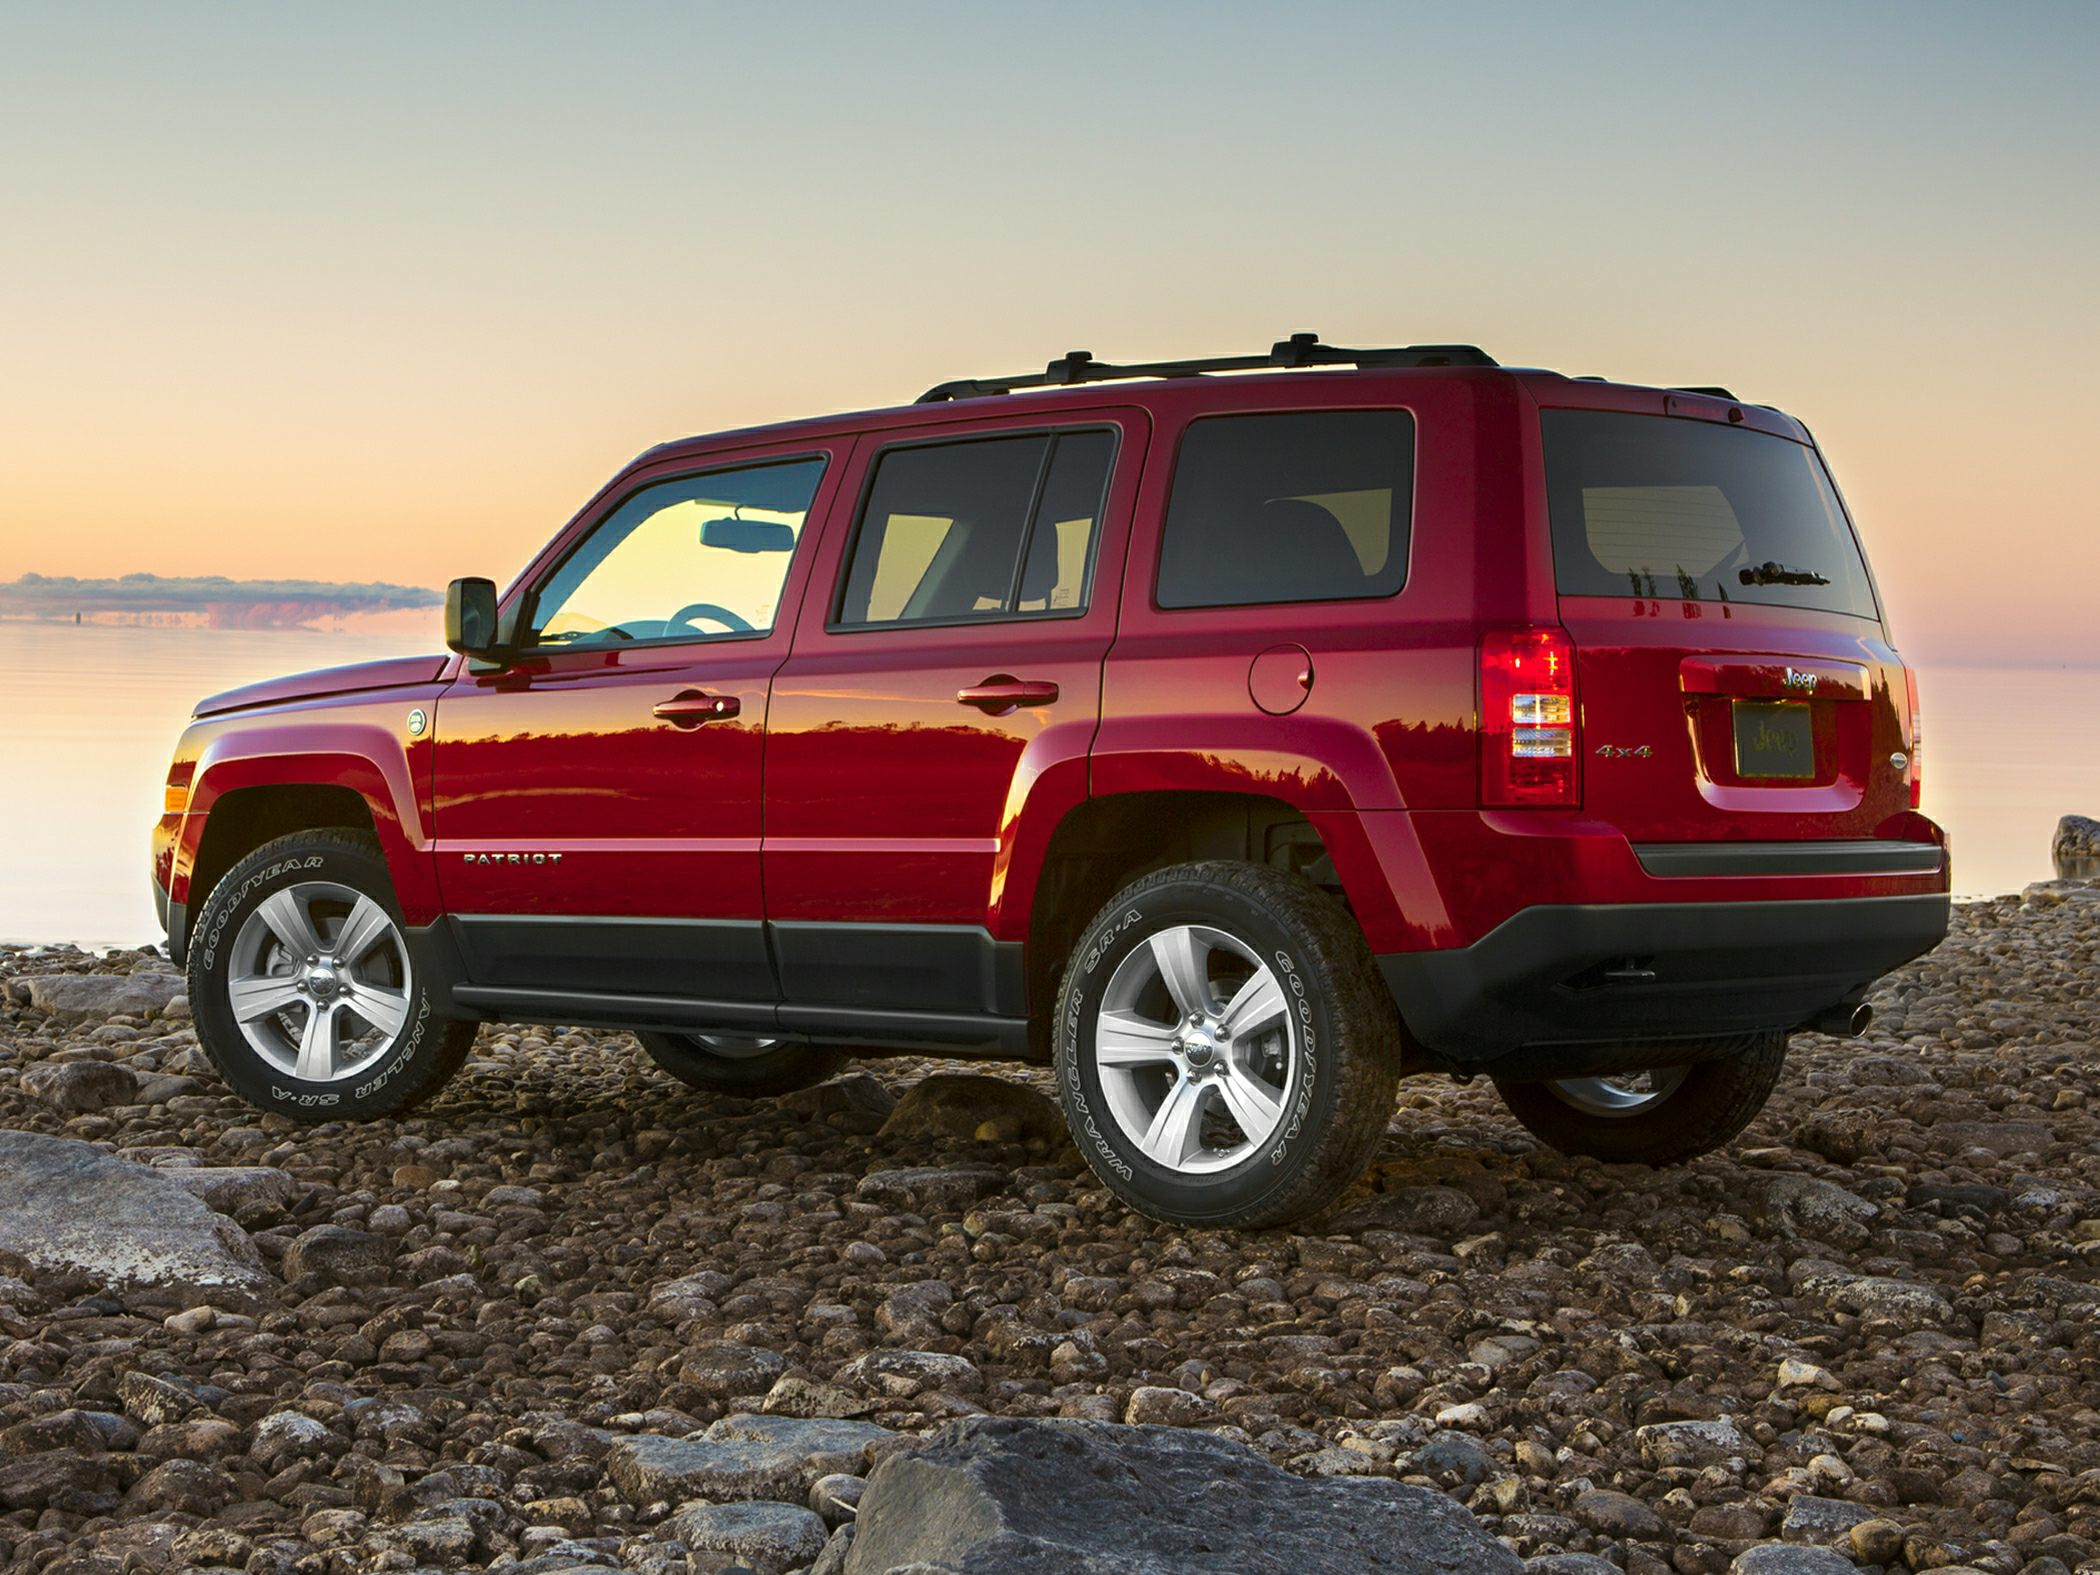 jeep patriot 2015 images #4